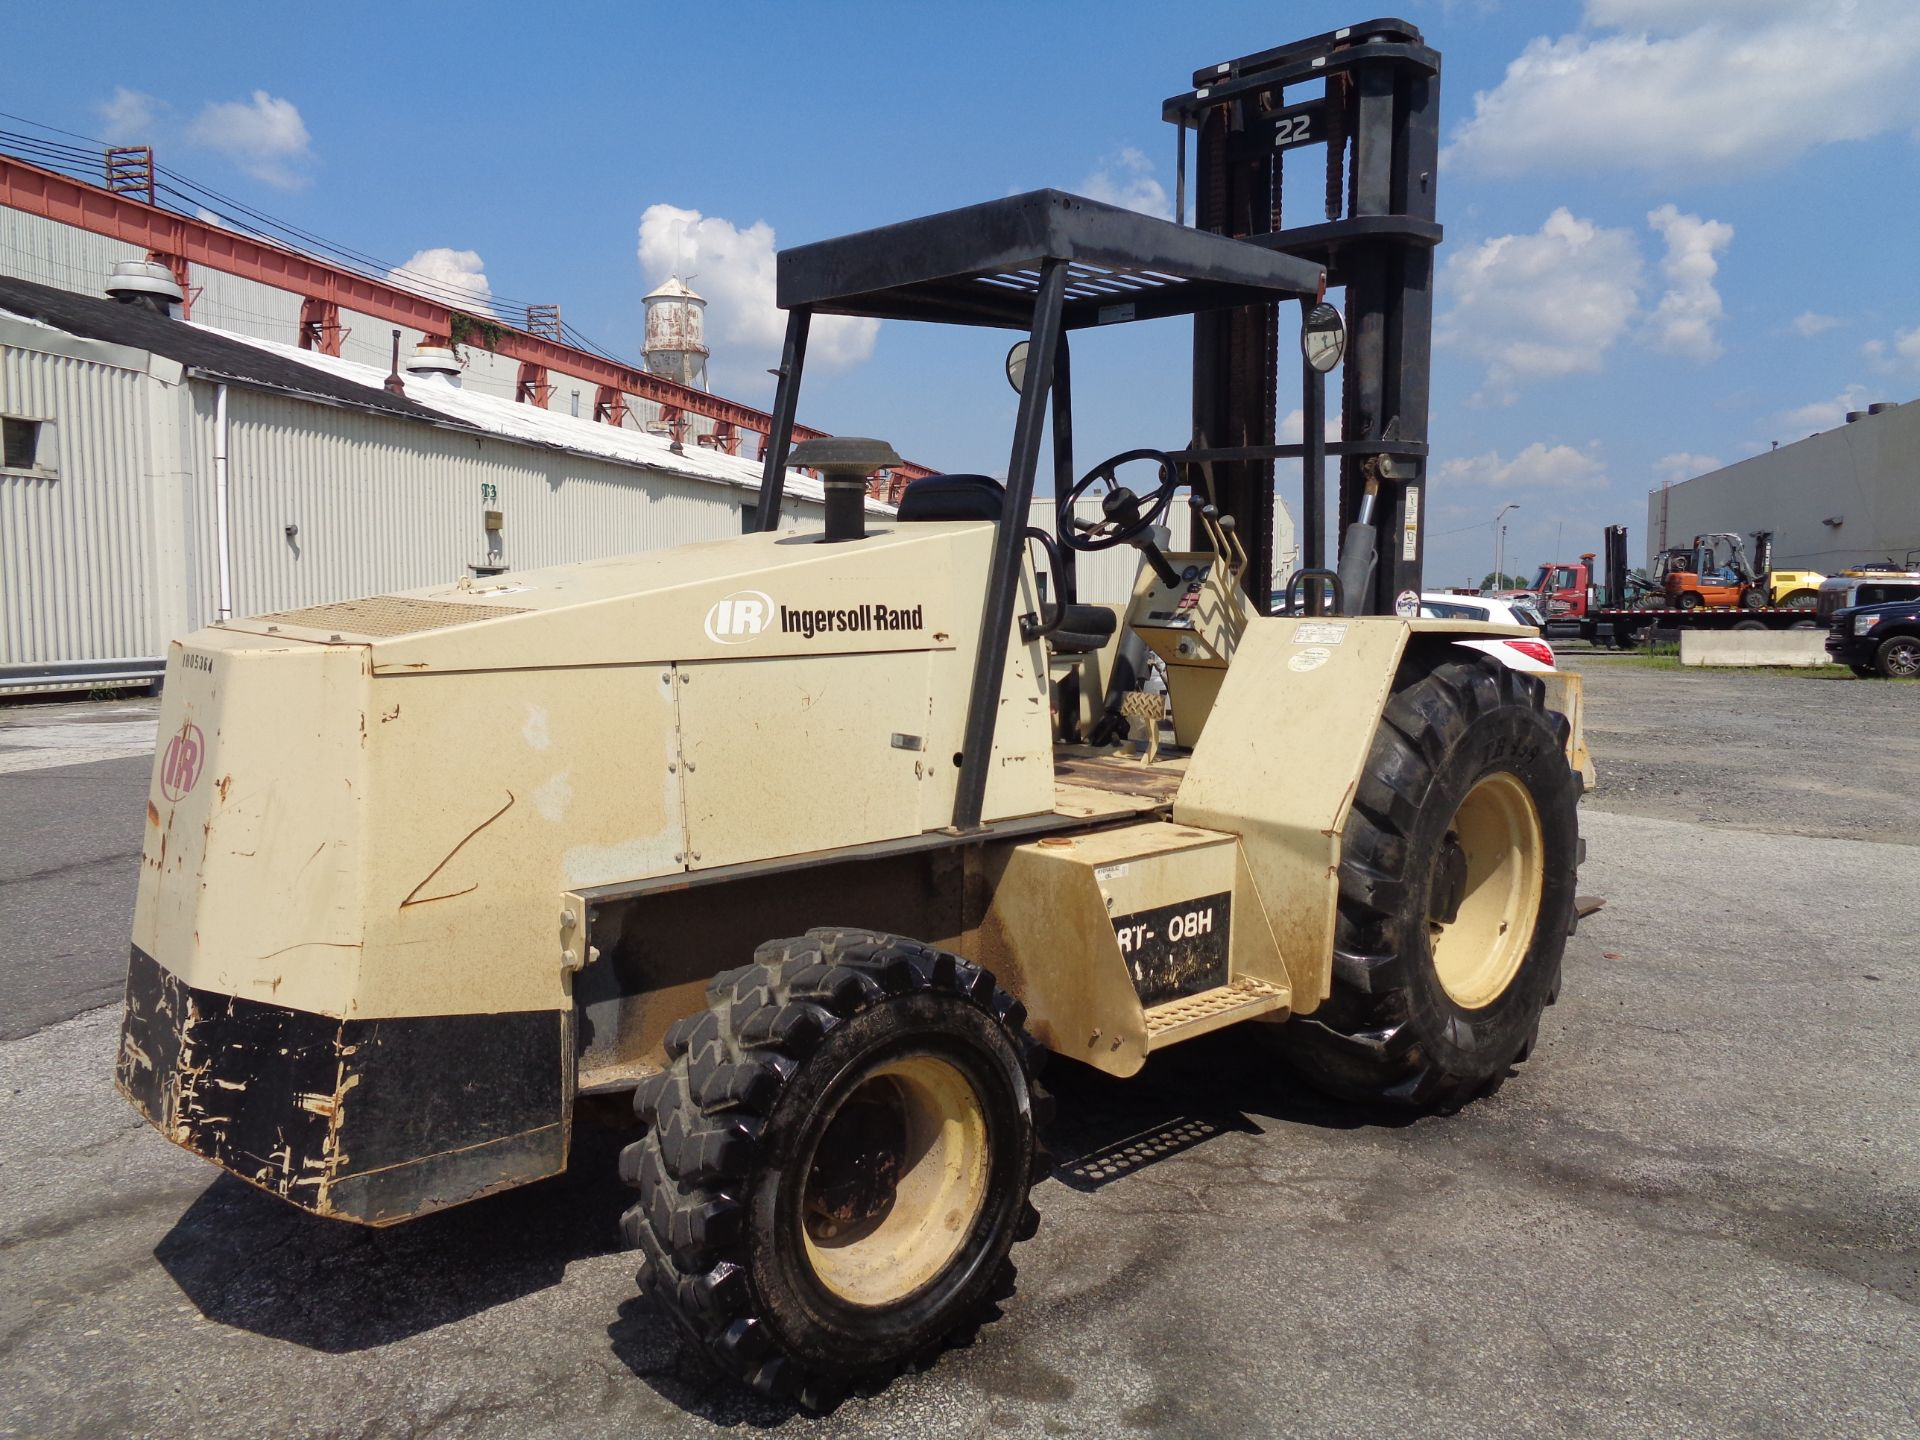 Lot 42 - 2005 Ingersoll Rand RT708H 8,000lb Rough Terrain Forklift - Only 455 hours